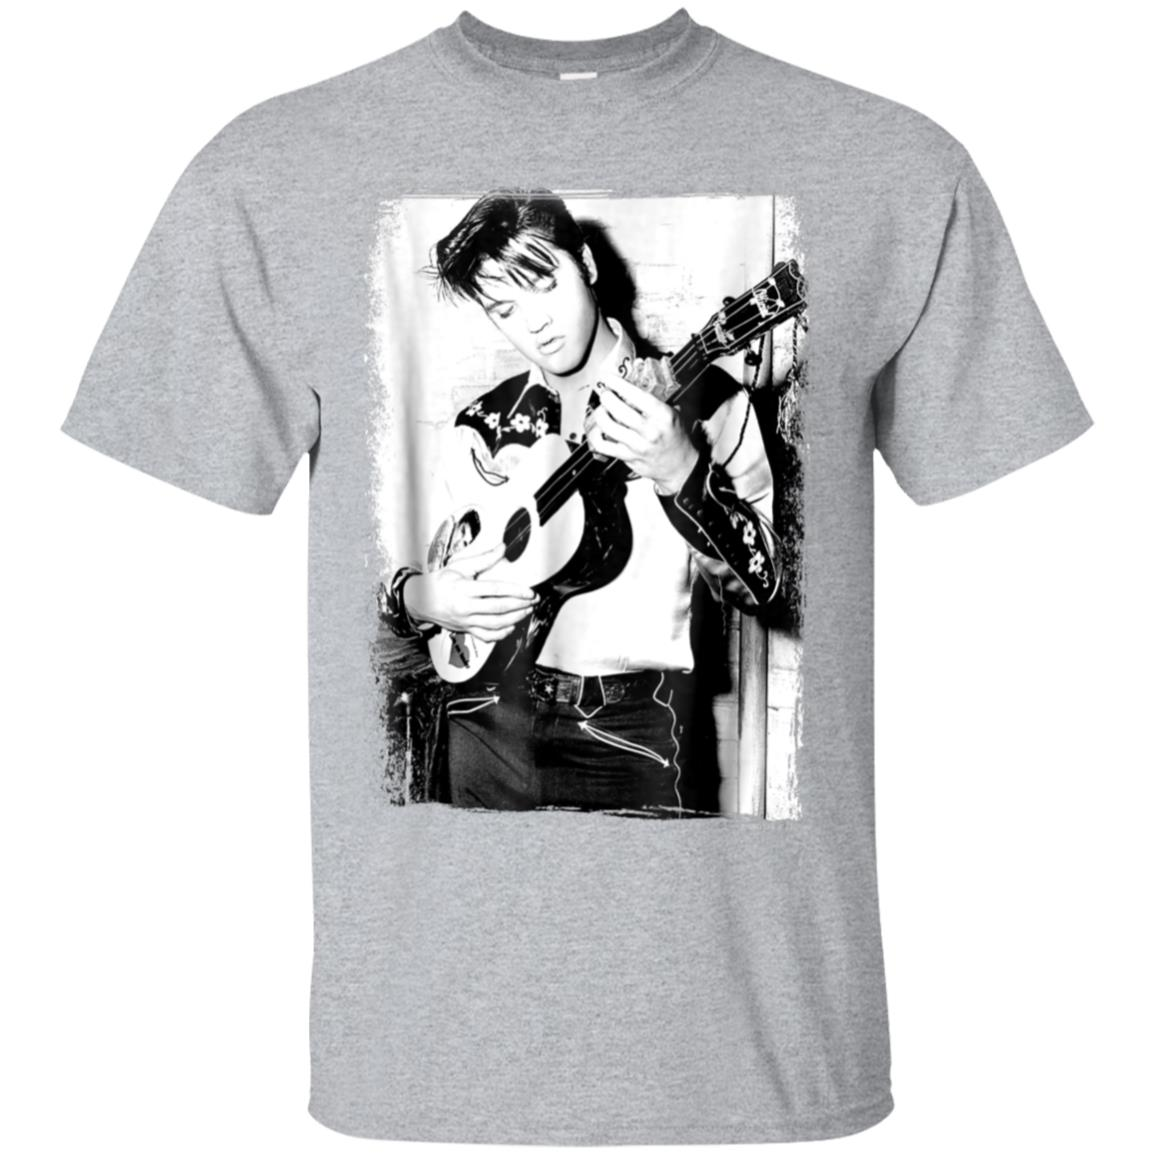 Elvis Presley rocking out and leaning T-shirt 99promocode